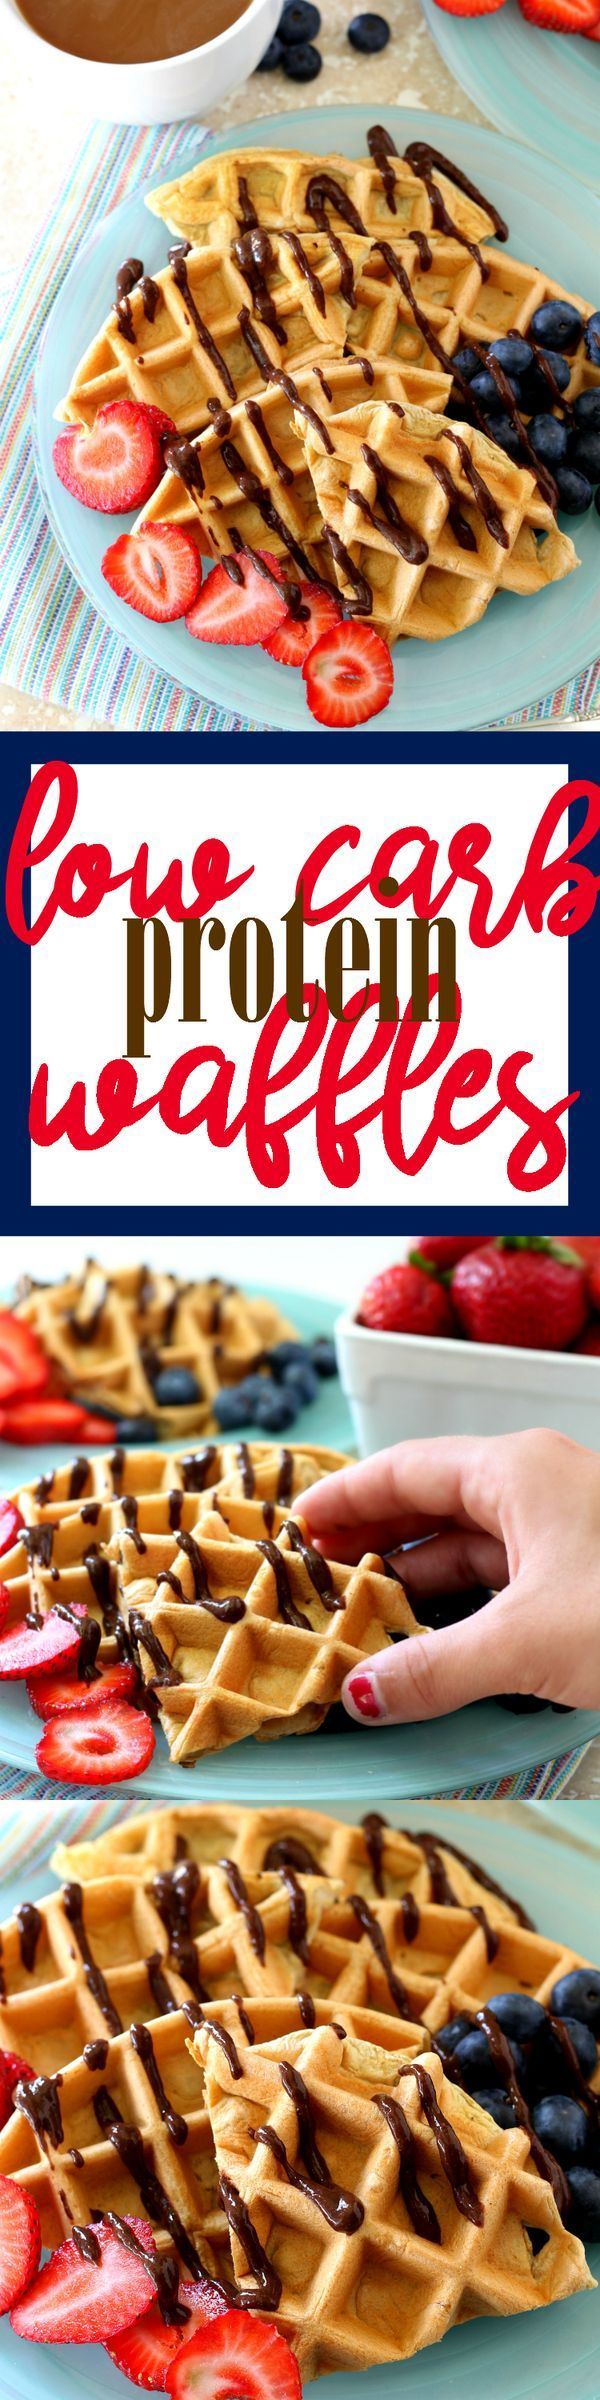 This breakfast recipe for Low Carb Protein Waffles is so simple, easy and healthy, but the best part is how out-of-this world delicious it is! (gluten-free, low-calorie)